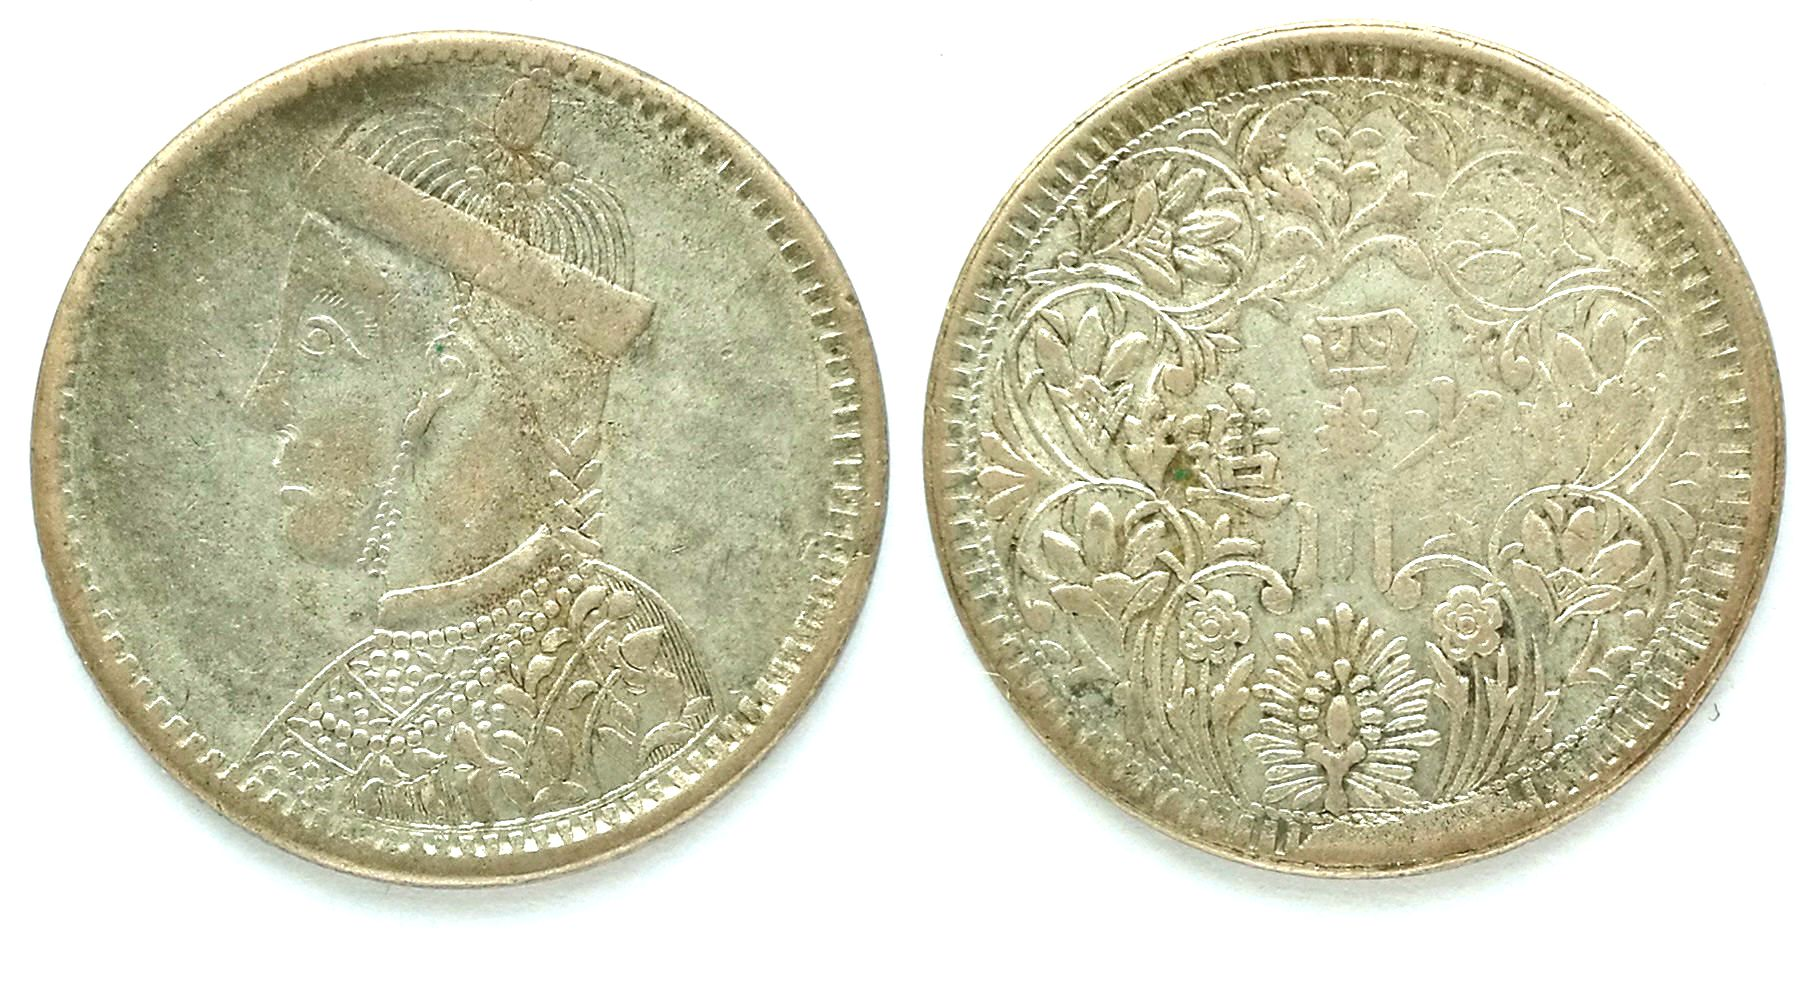 XZ097, Tibet Trade Silver Coin, One Rupee (Third Period), 1930's, 11.5 grams